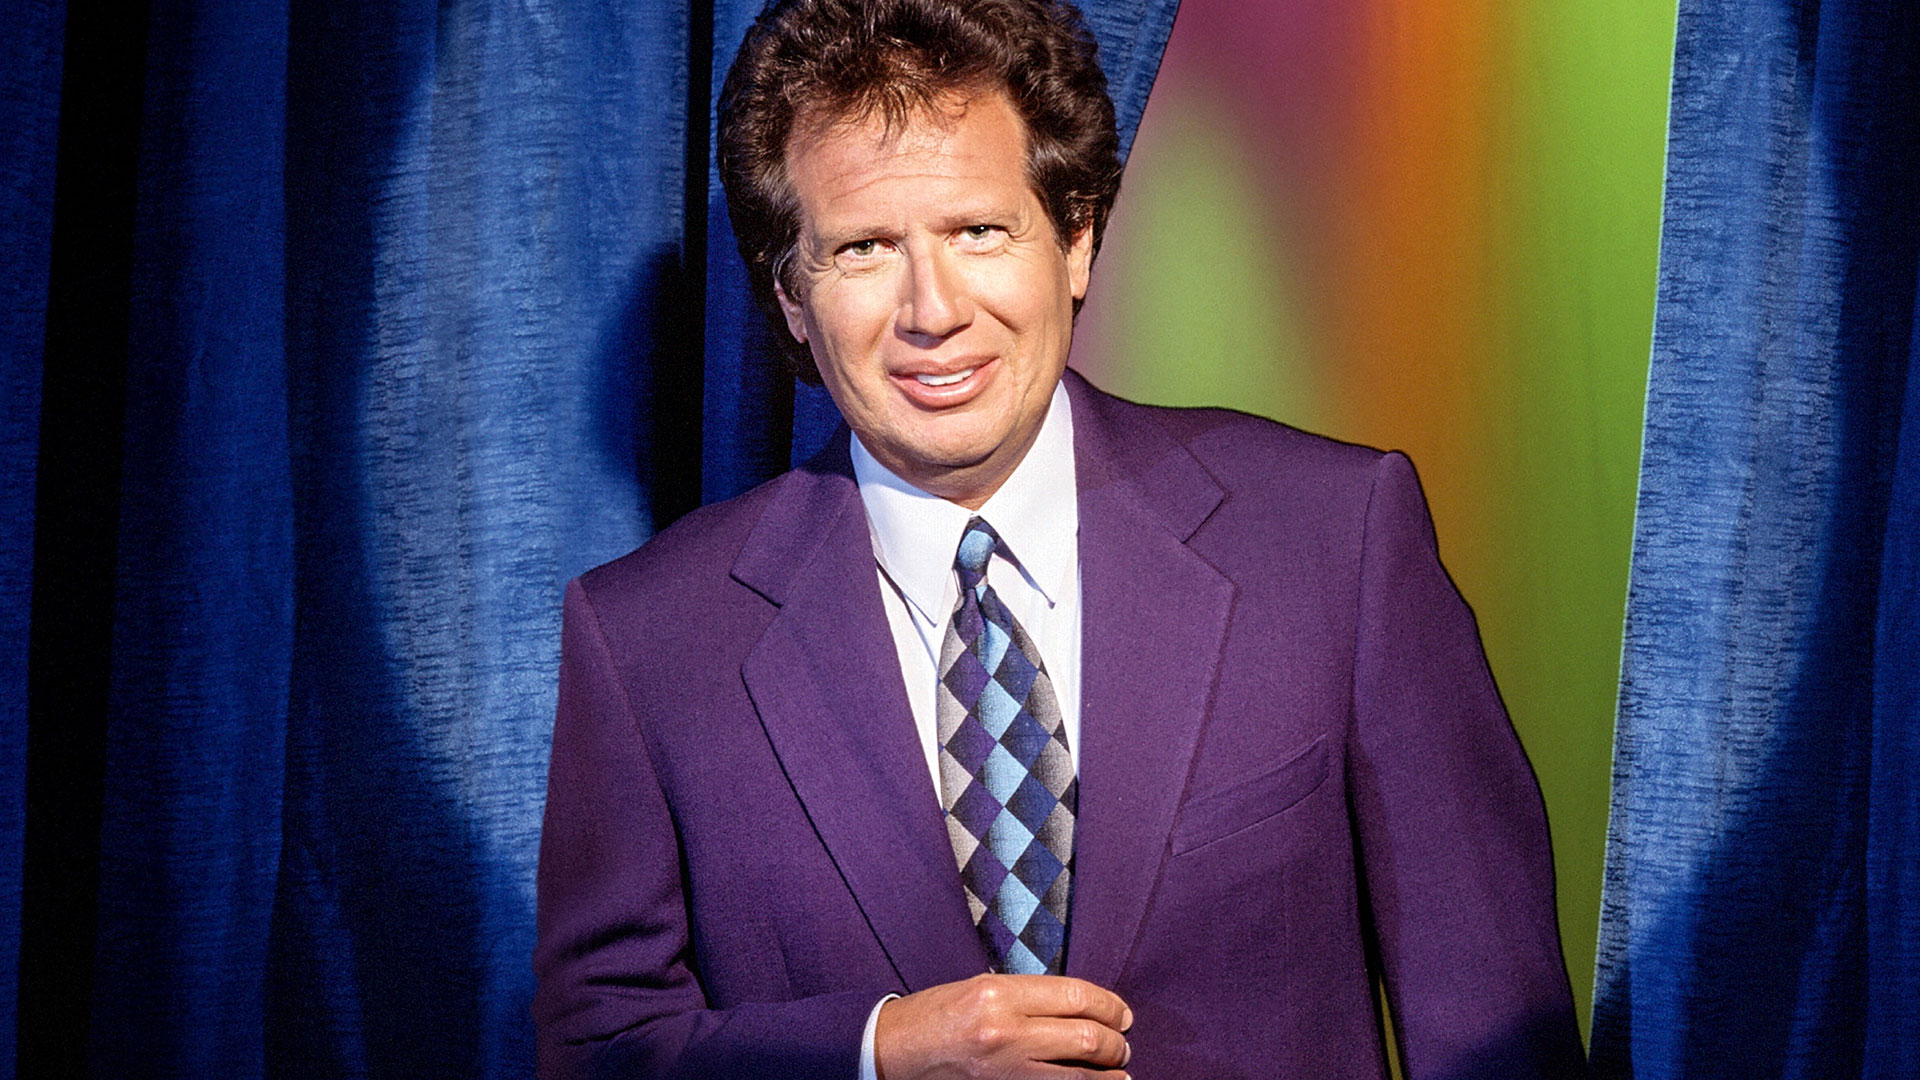 The Larry Sanders Show Starring Garry Shandling - Season 1